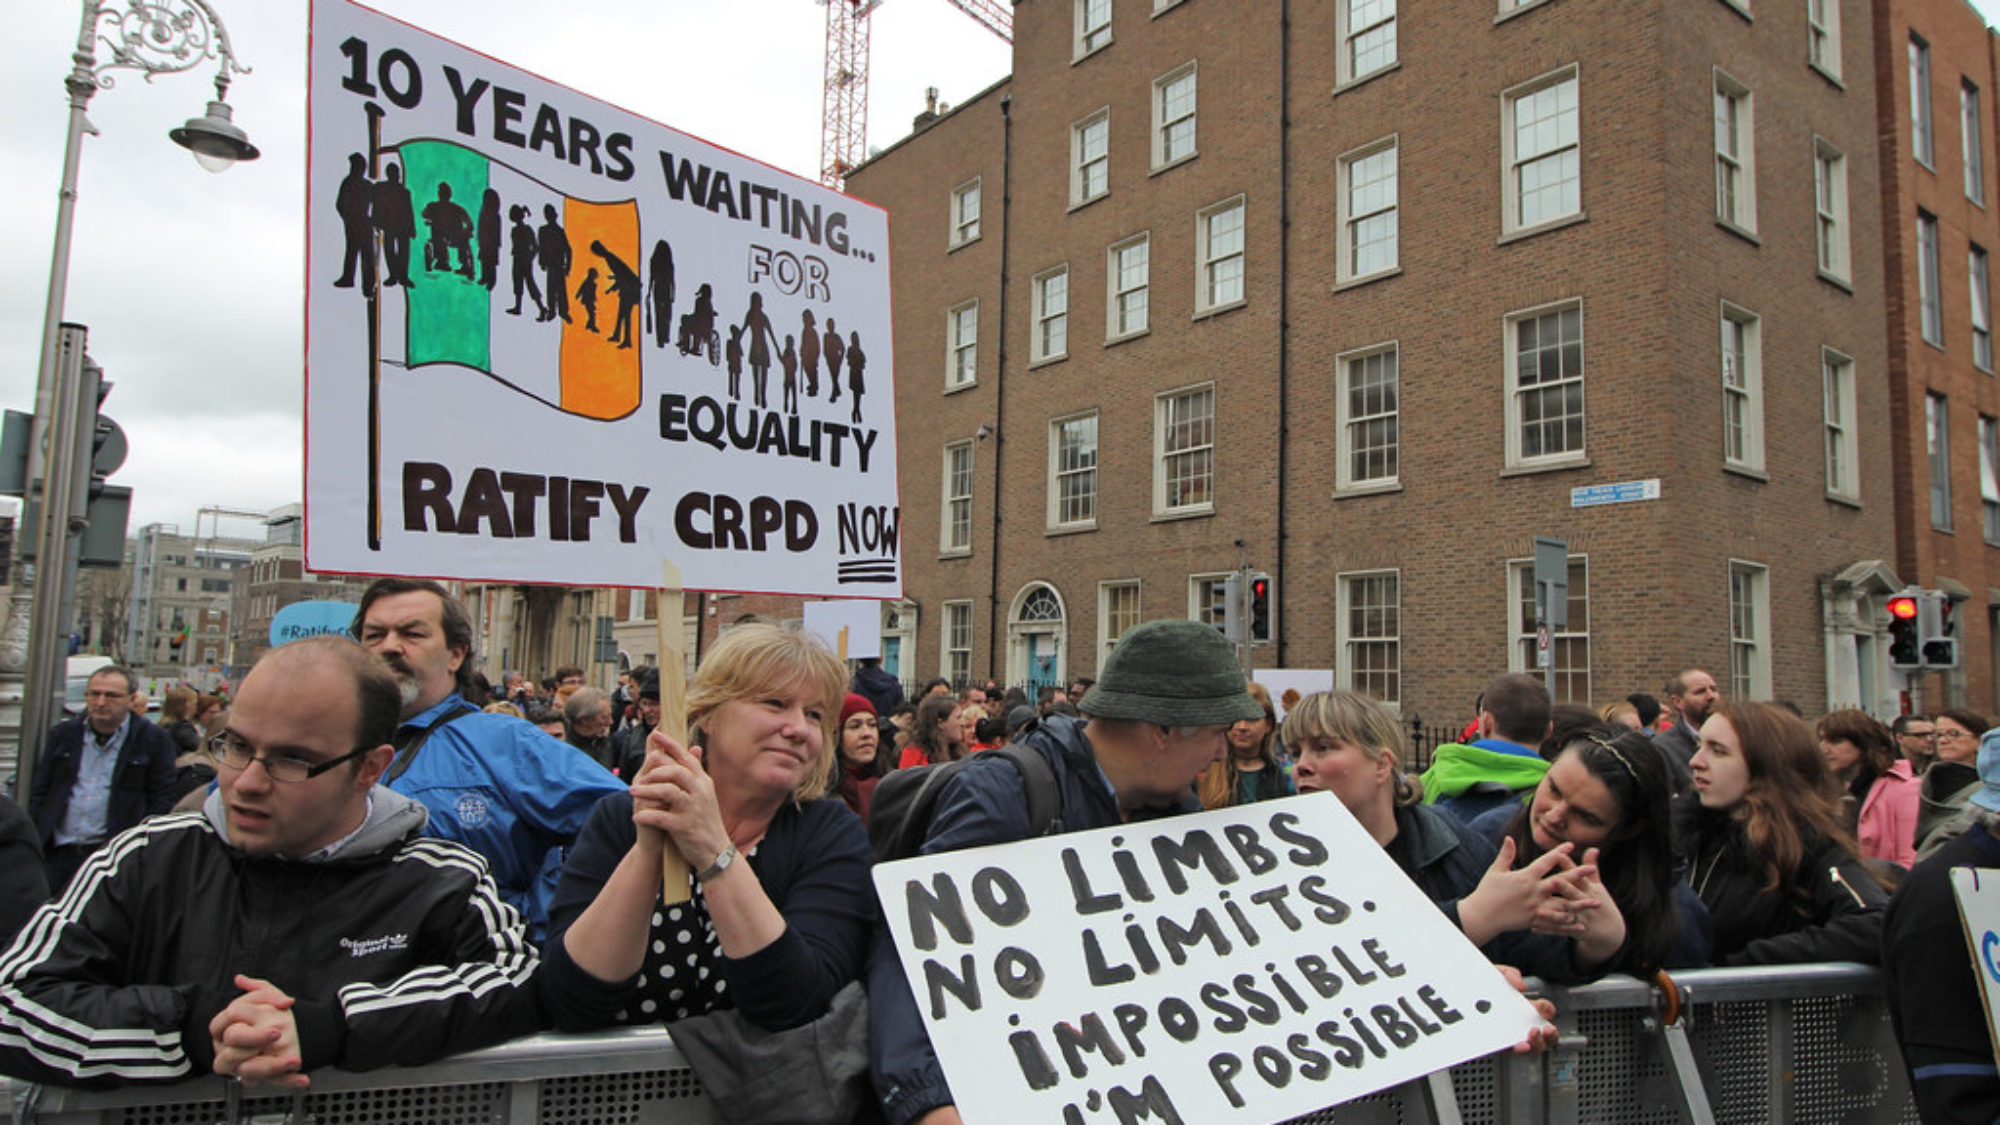 A disability rights rally